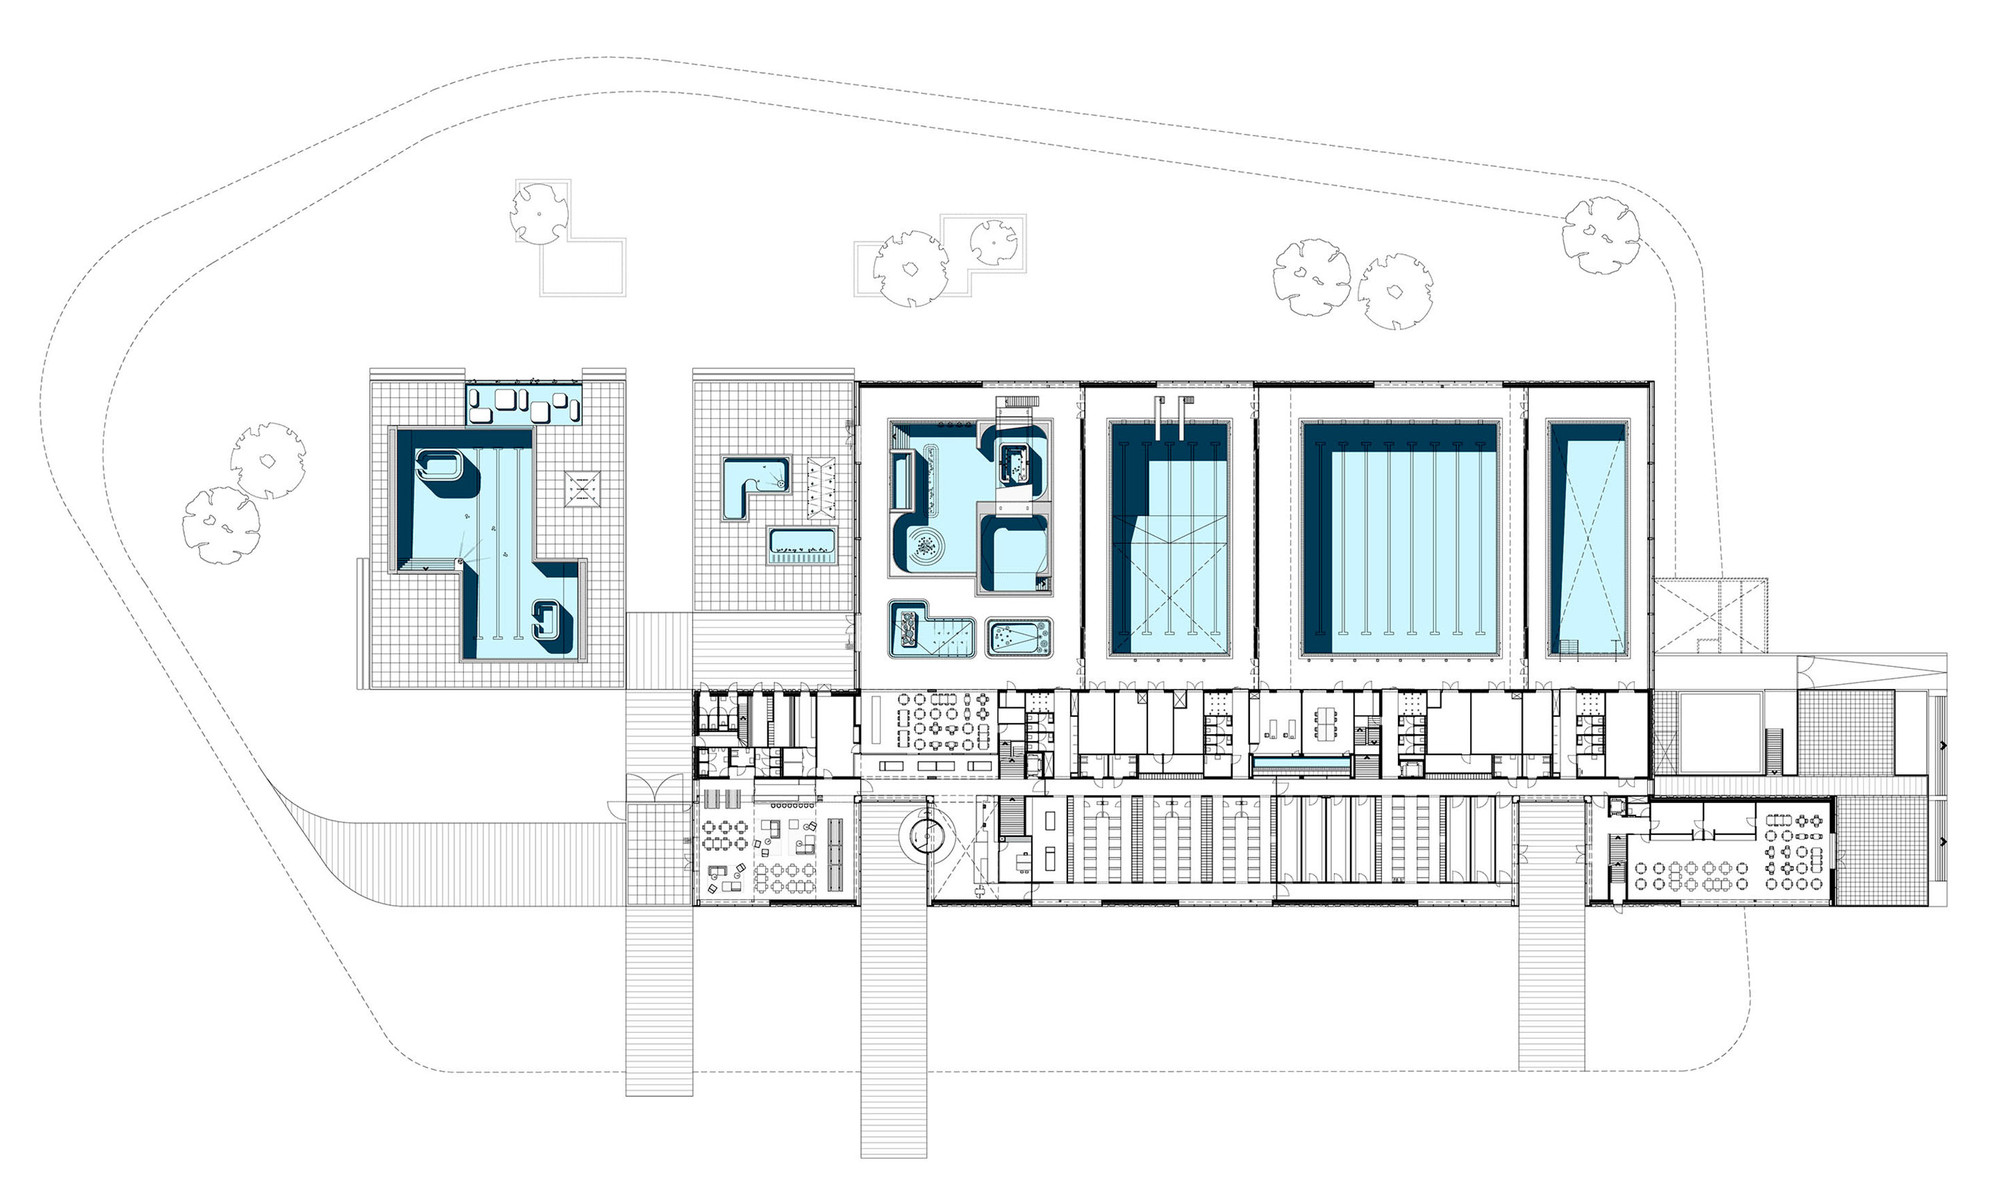 Multifunctional swimming pool complex de geusselt for Plan for swimming pool